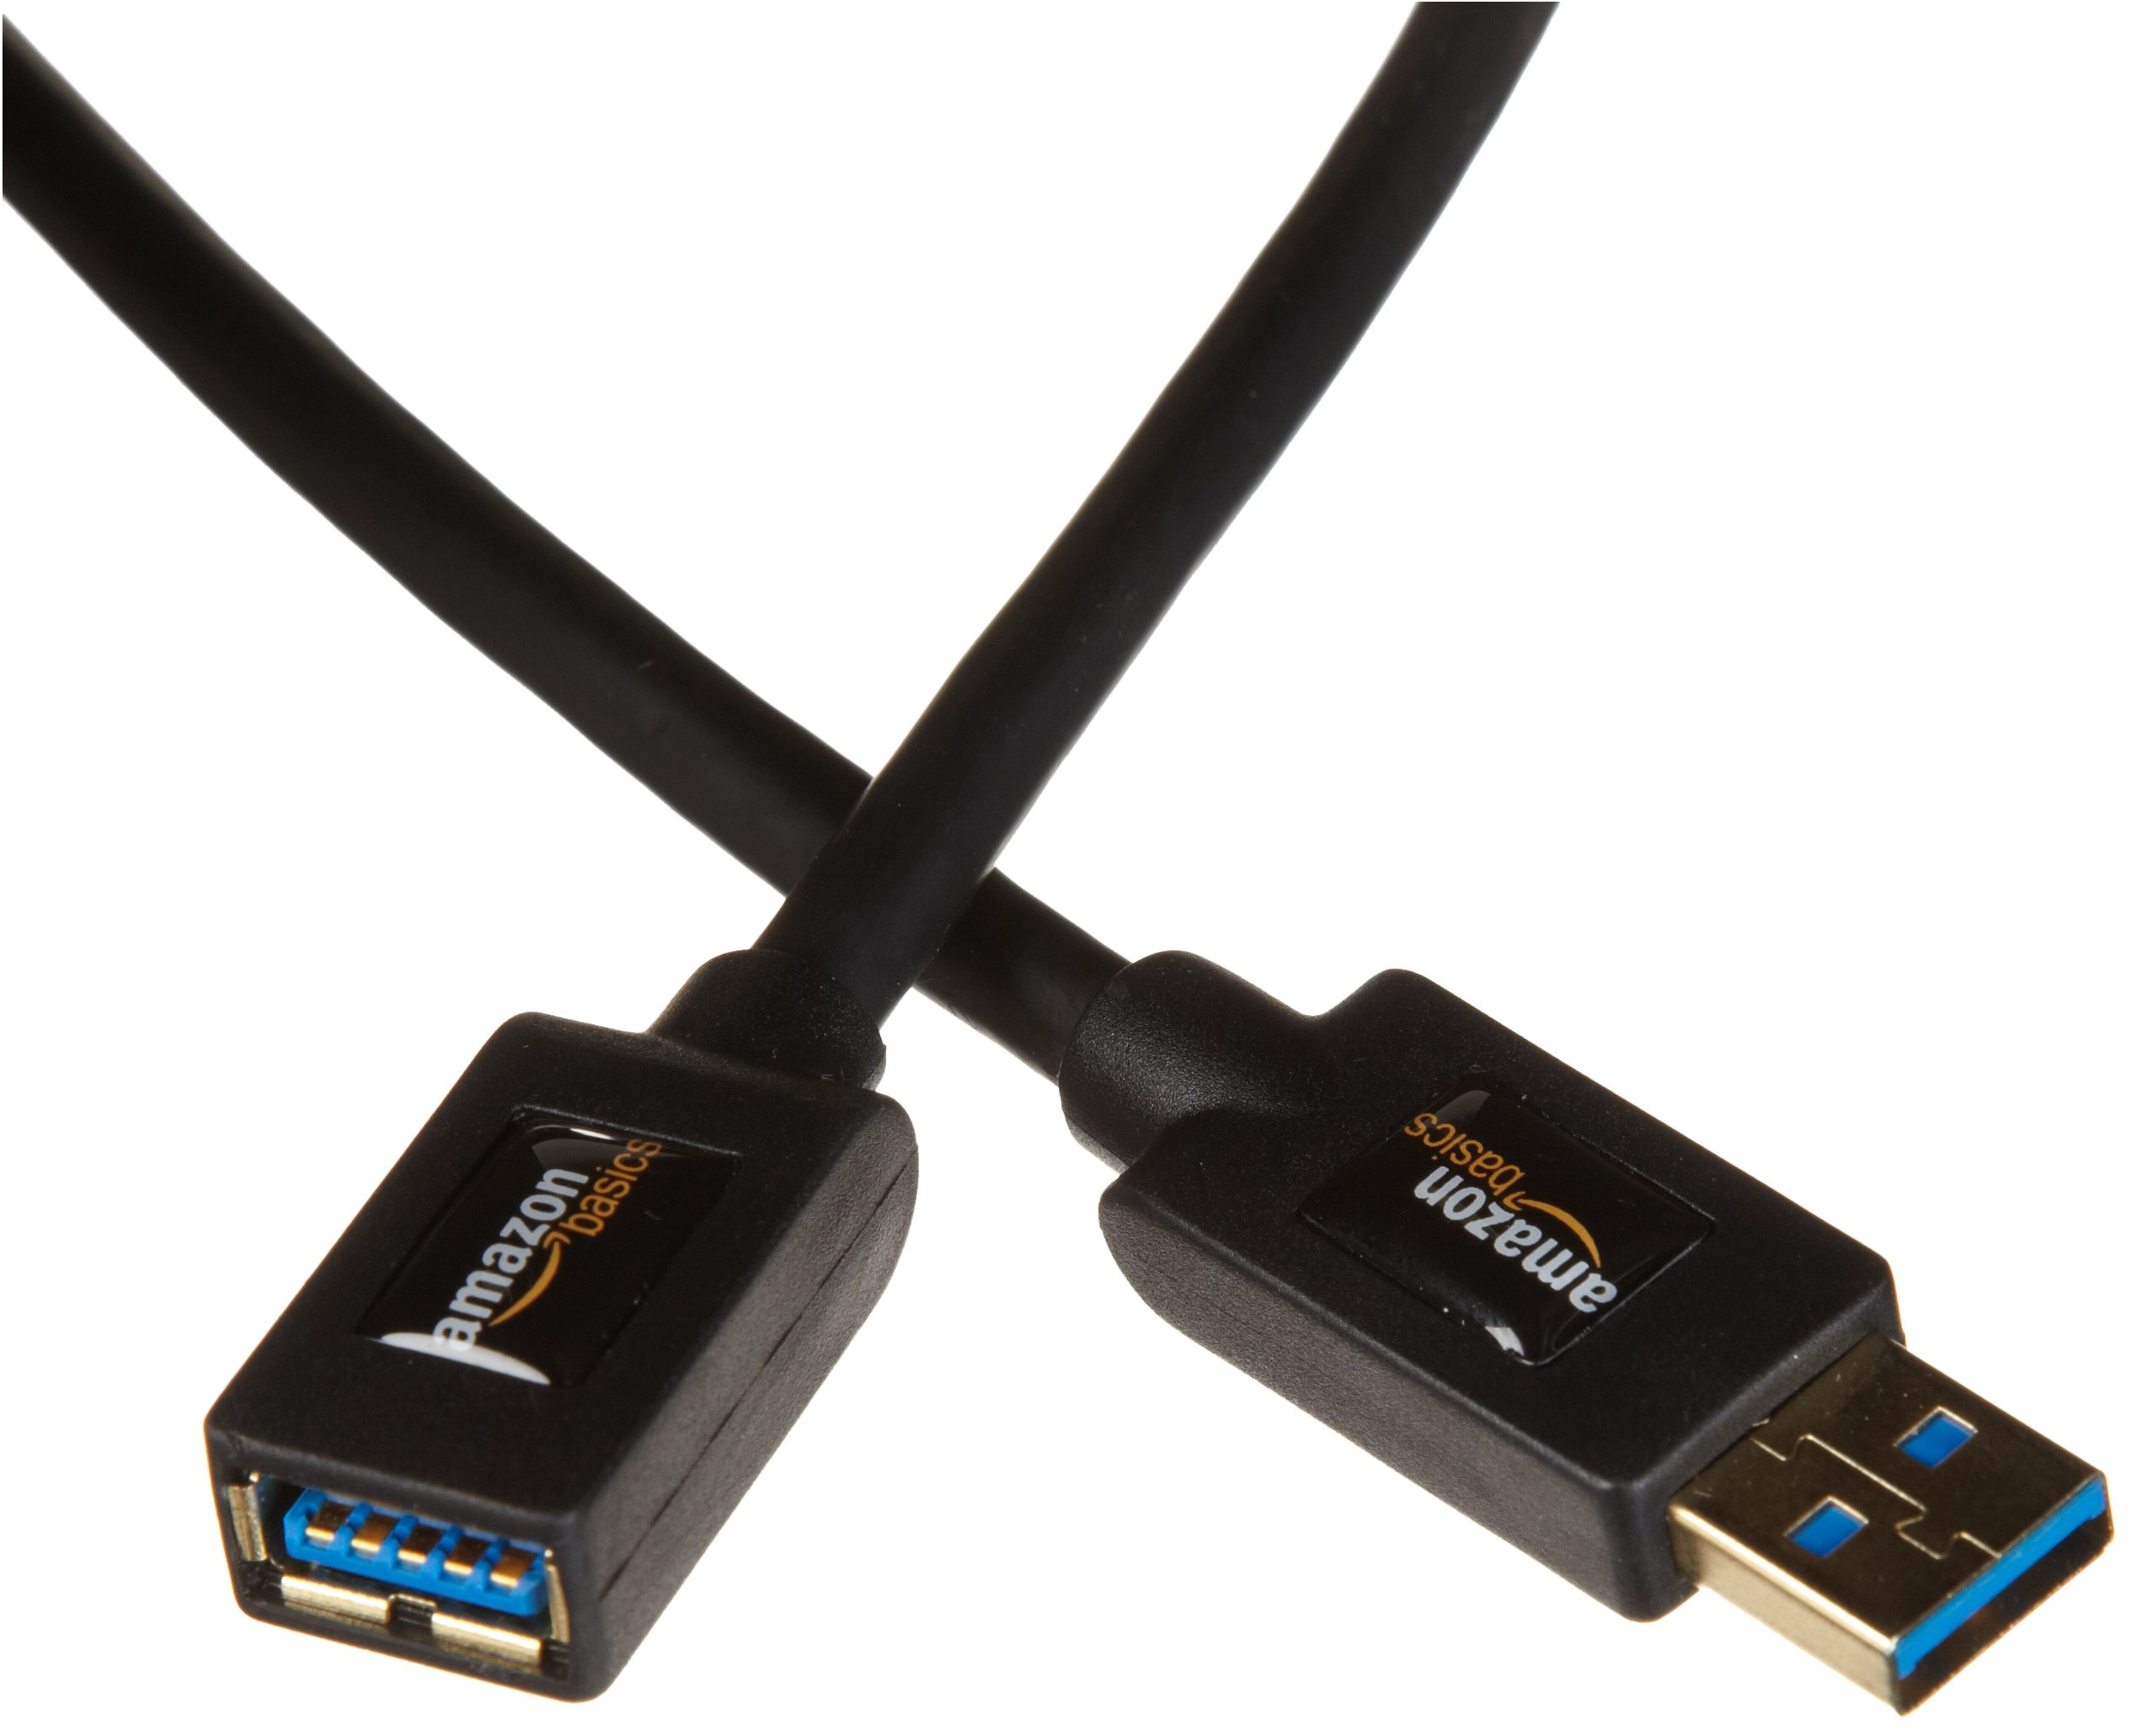 AmazonBasics USB 3.0 Extension Cable - A-Male to A-Female - 6.5 Feet (2 meters), 10-Pack by AmazonBasics